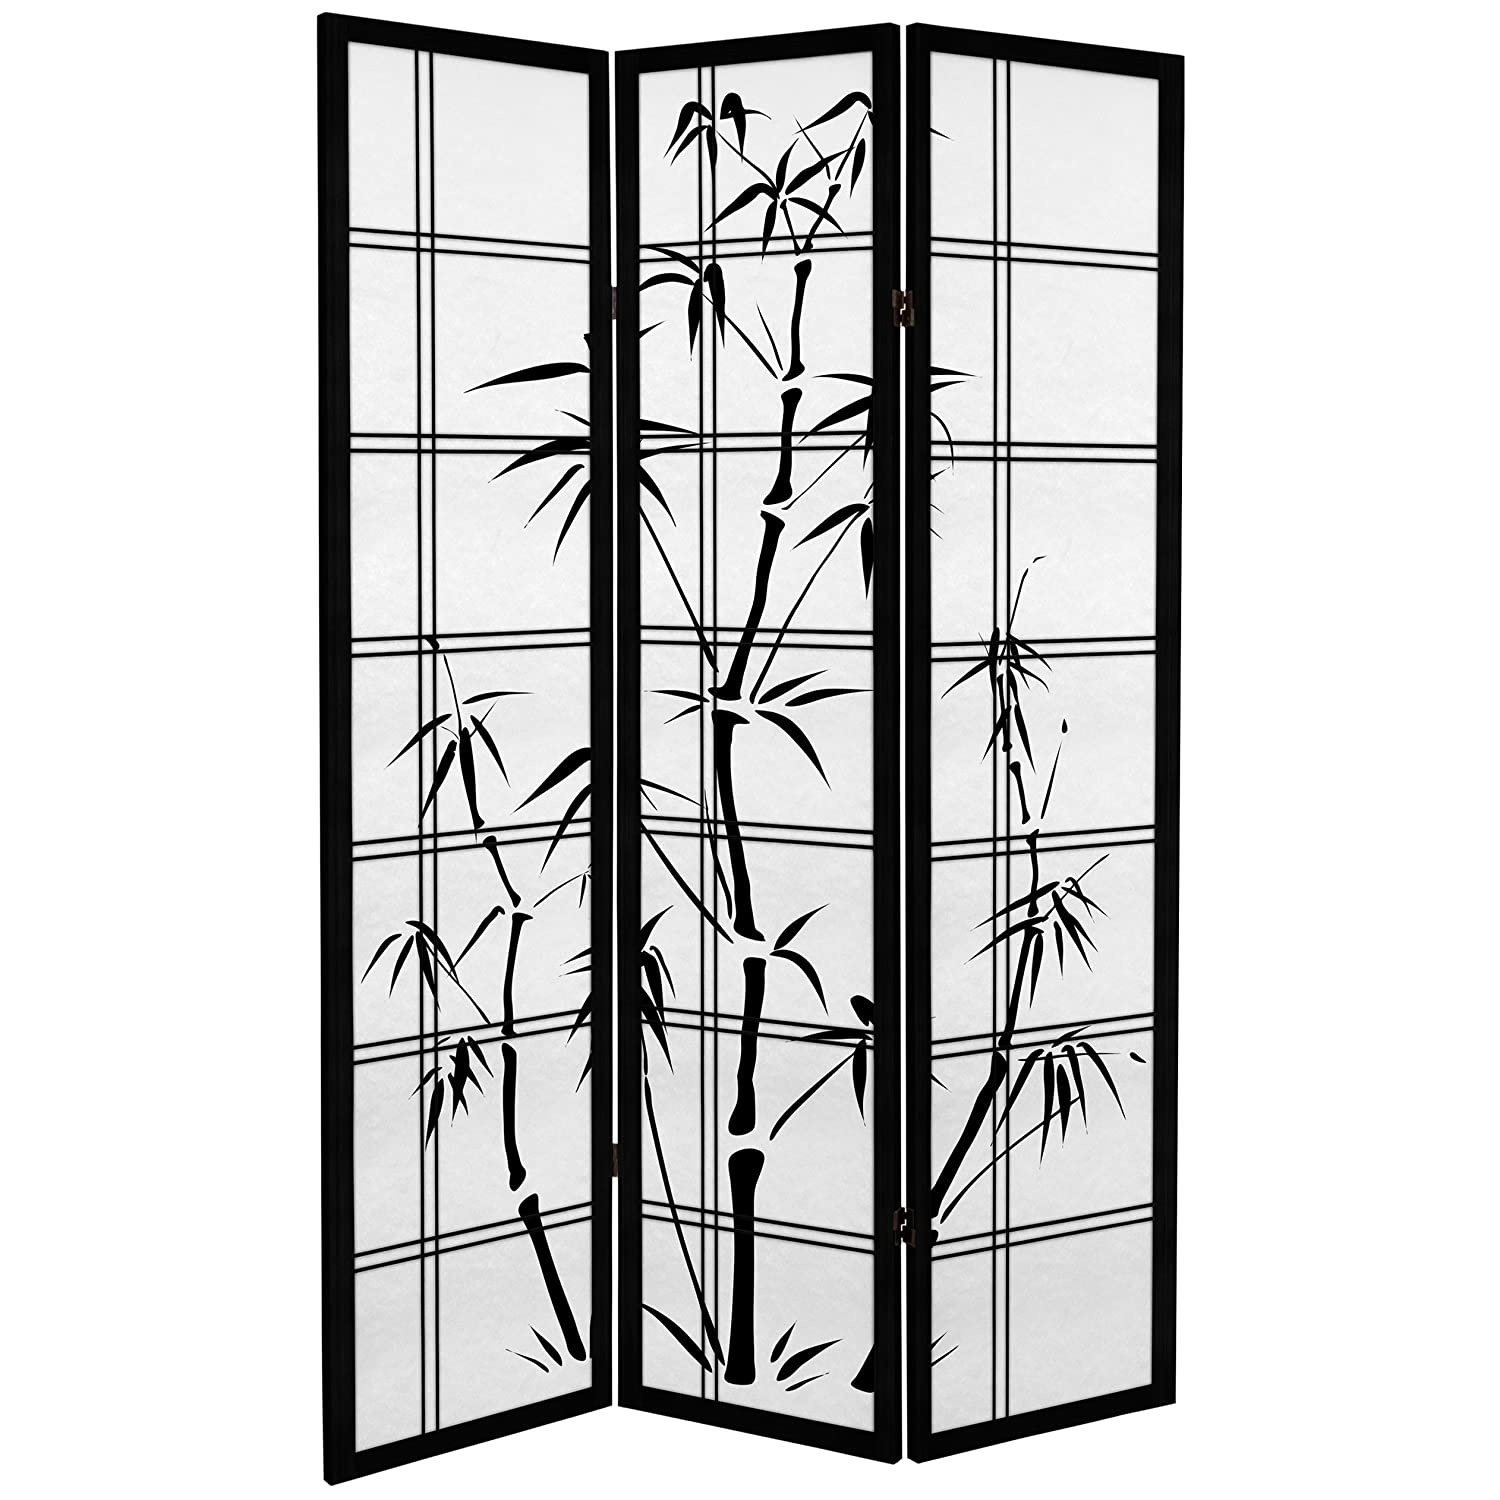 Oriental Furniture 6 ft. Tall Canvas Bamboo Tree Room Divider - Black - 3 Panels